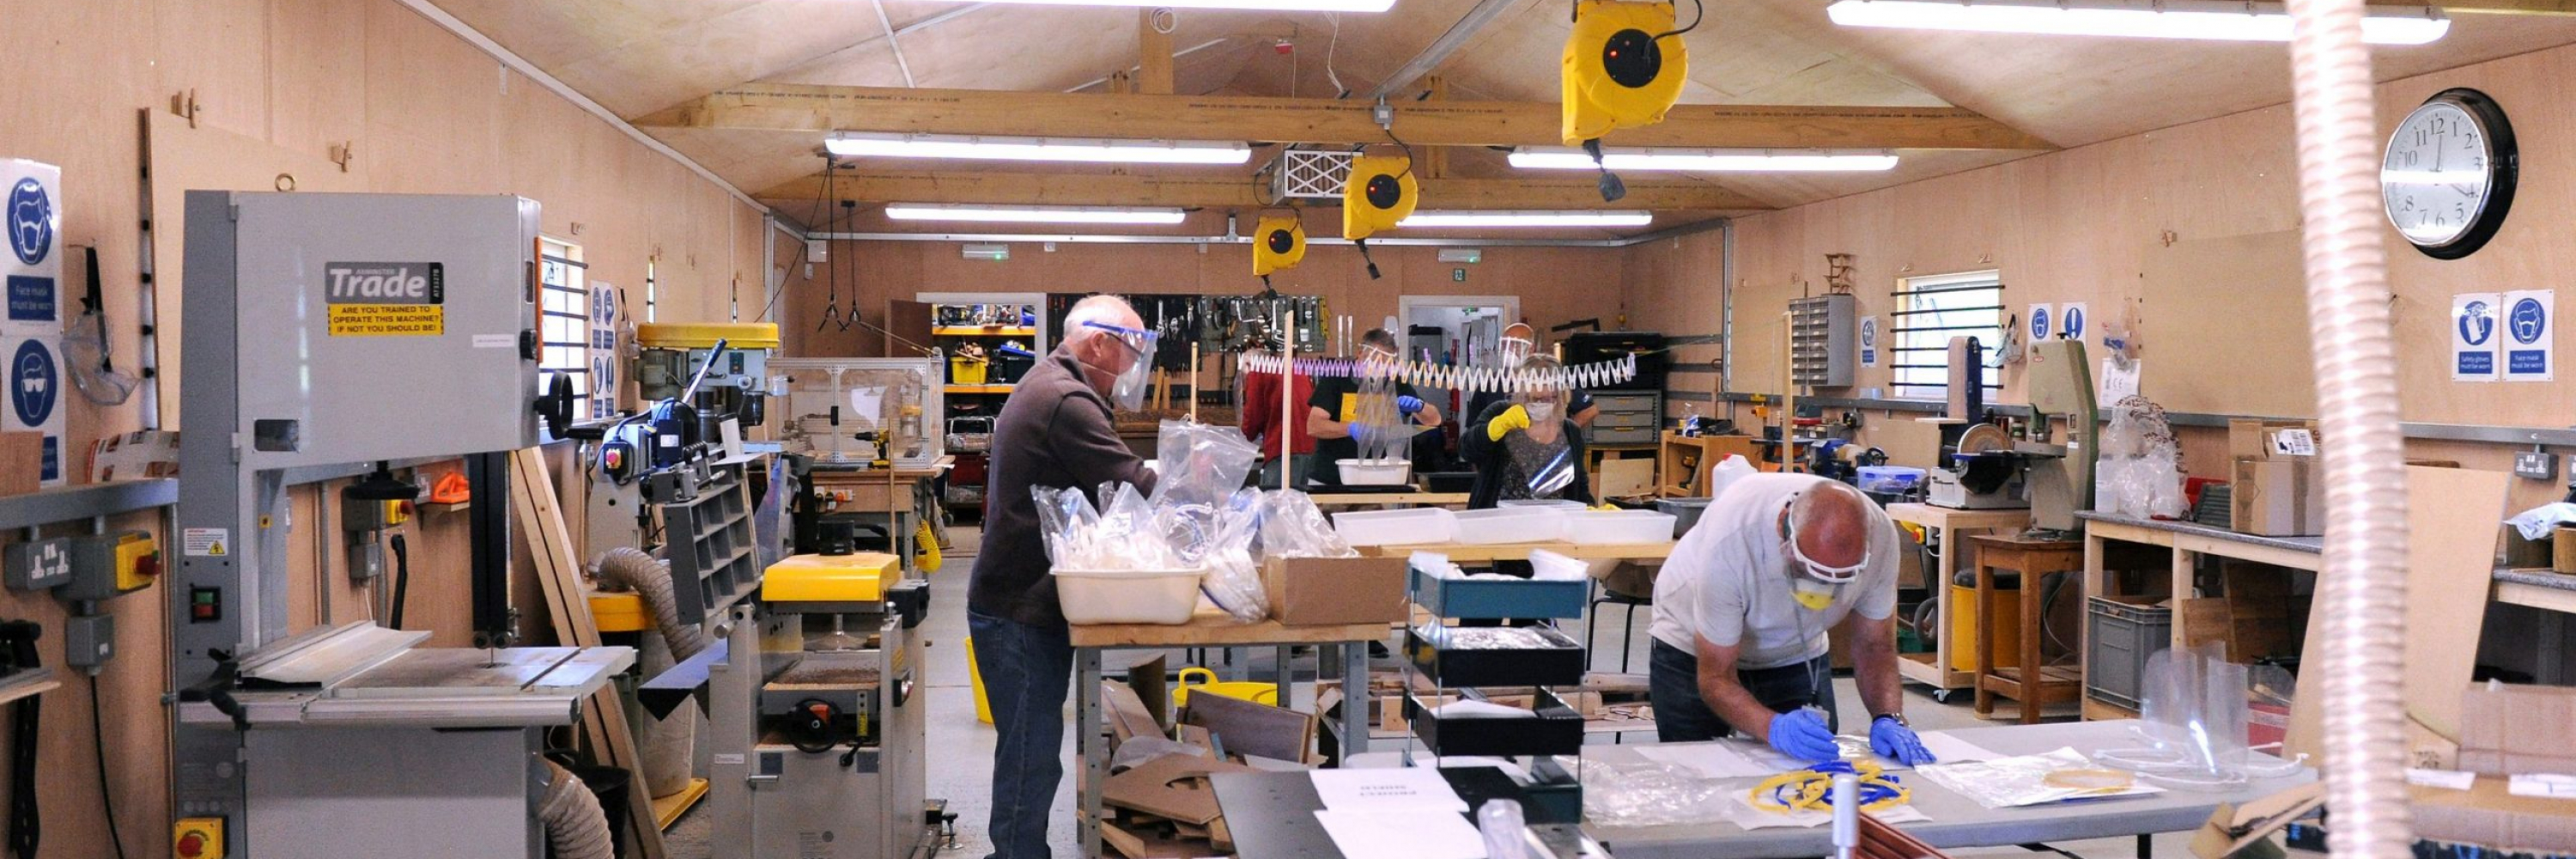 Project Shield Sees Local 3D Printers Making Face Protection PPE